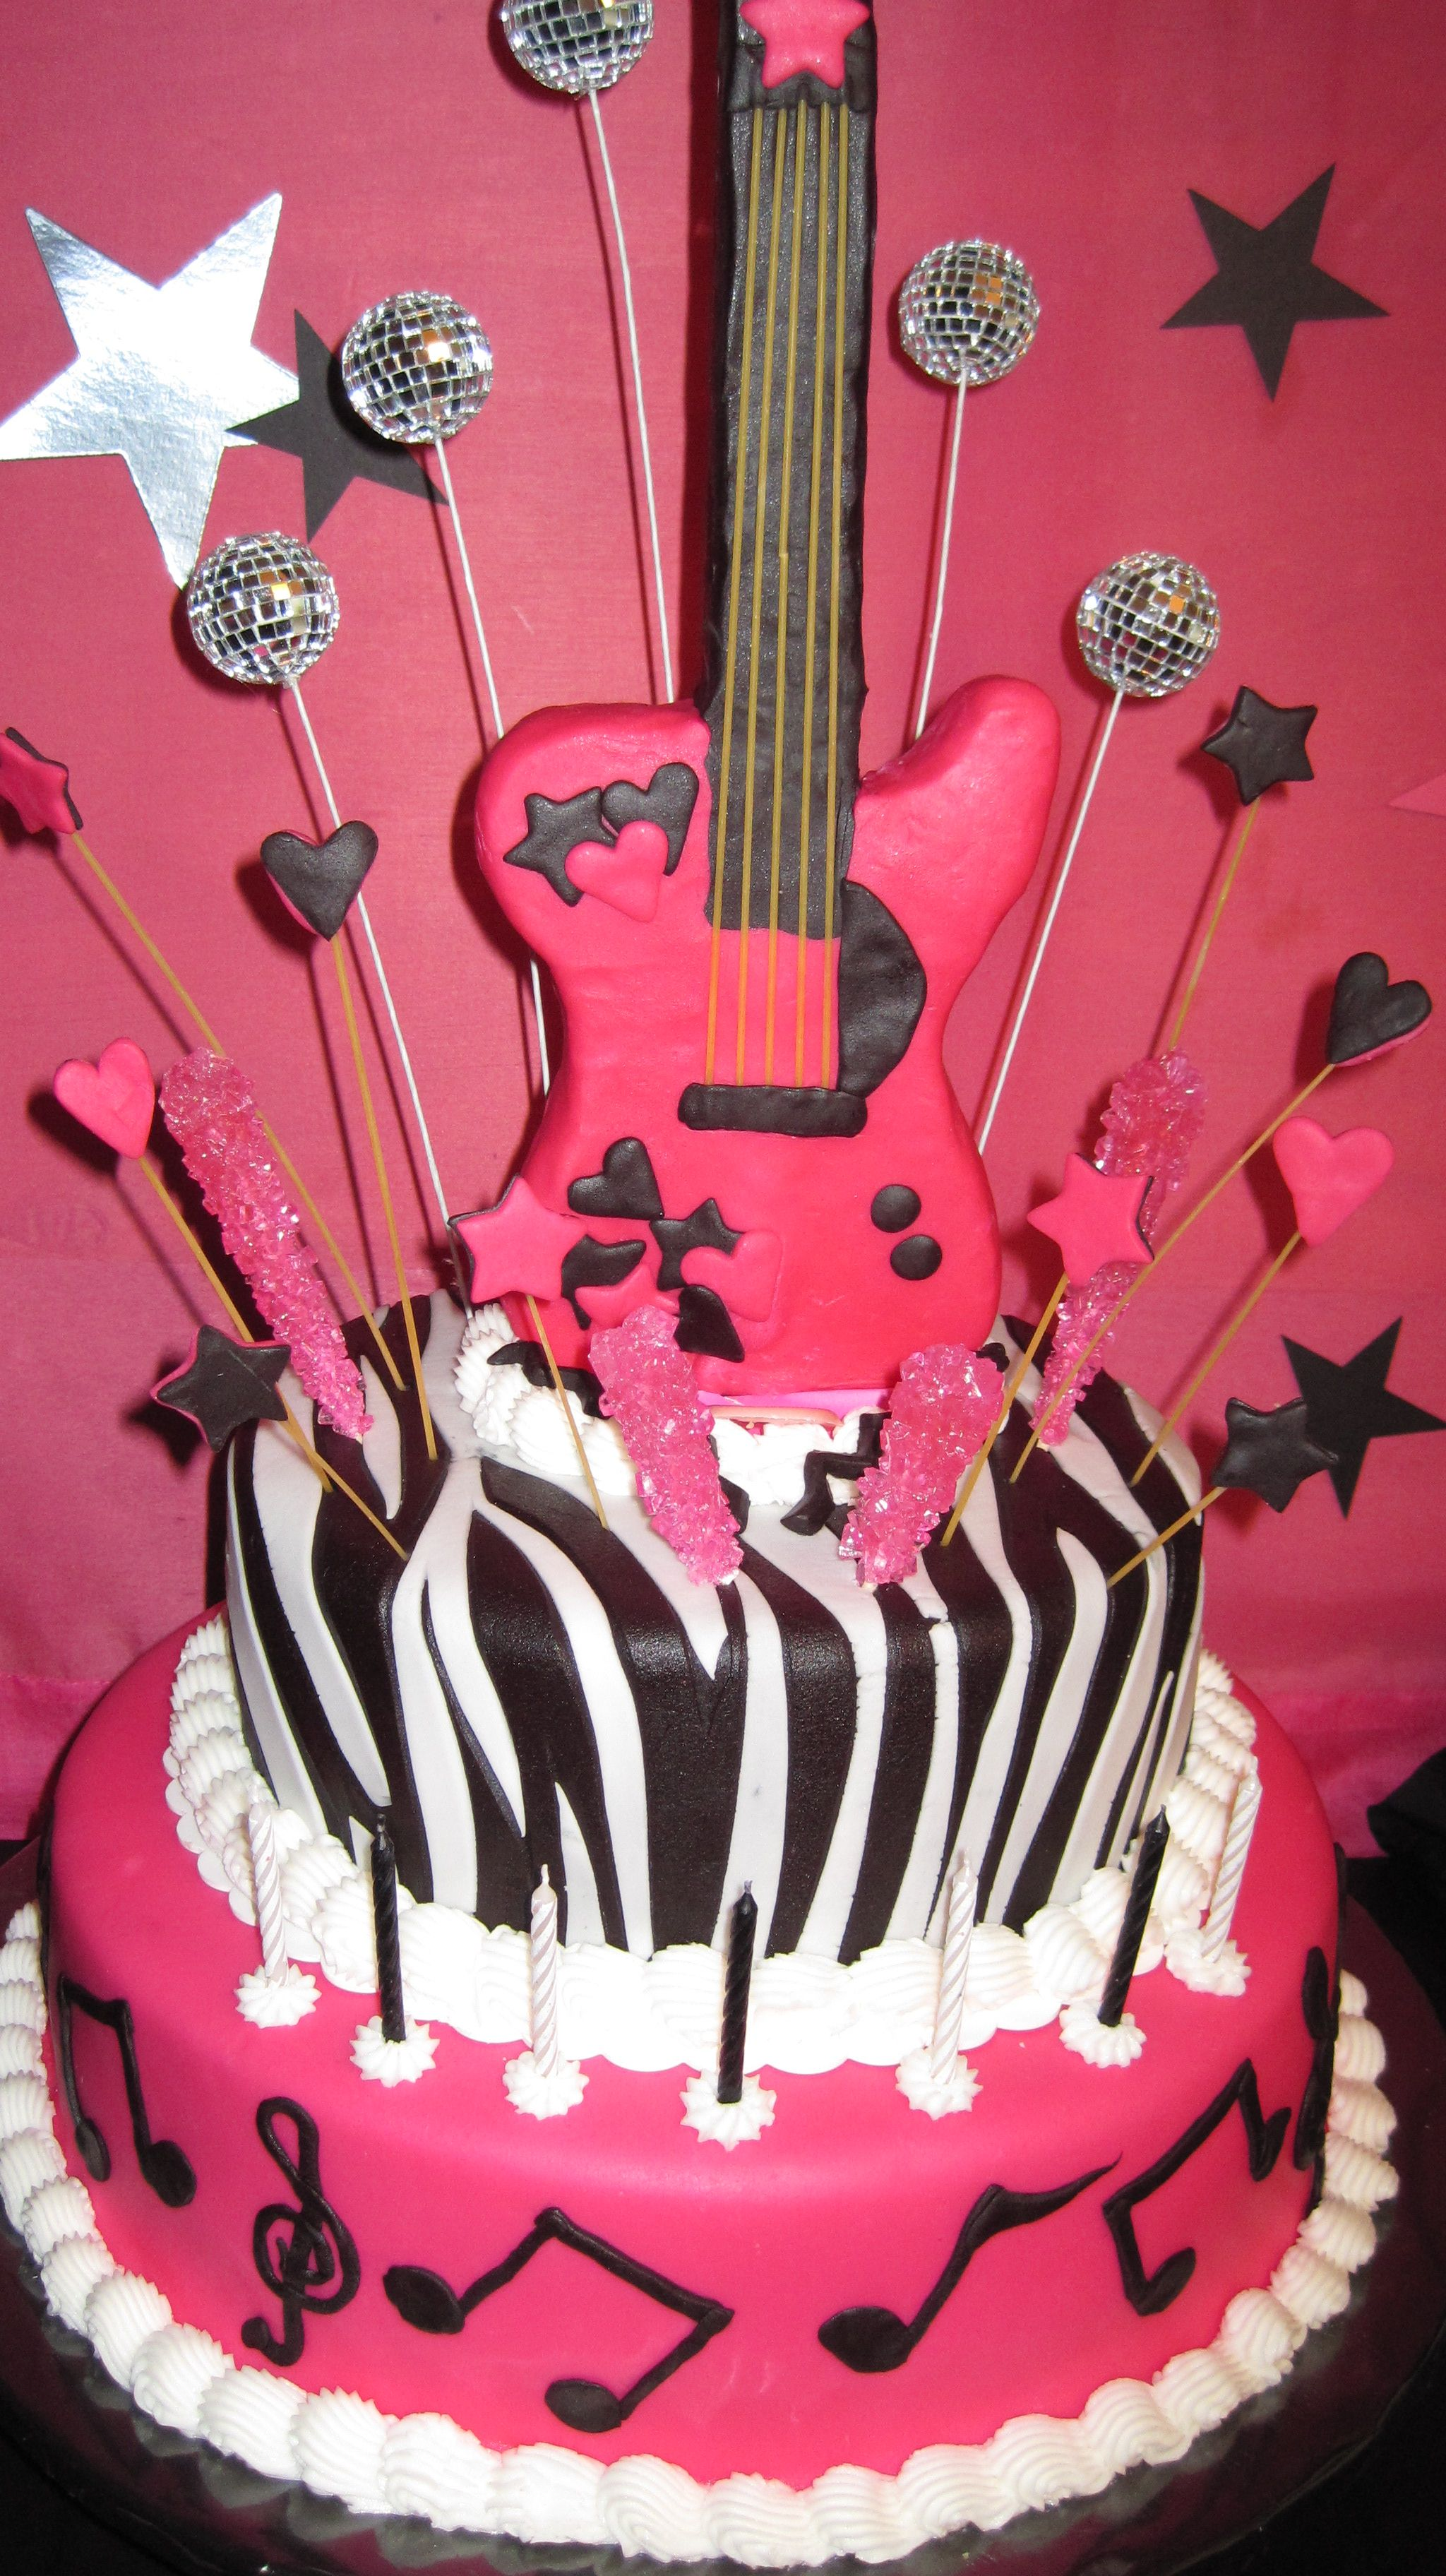 Kids Cakes On Catch My Party Part 2 Golden Birthday Cake And